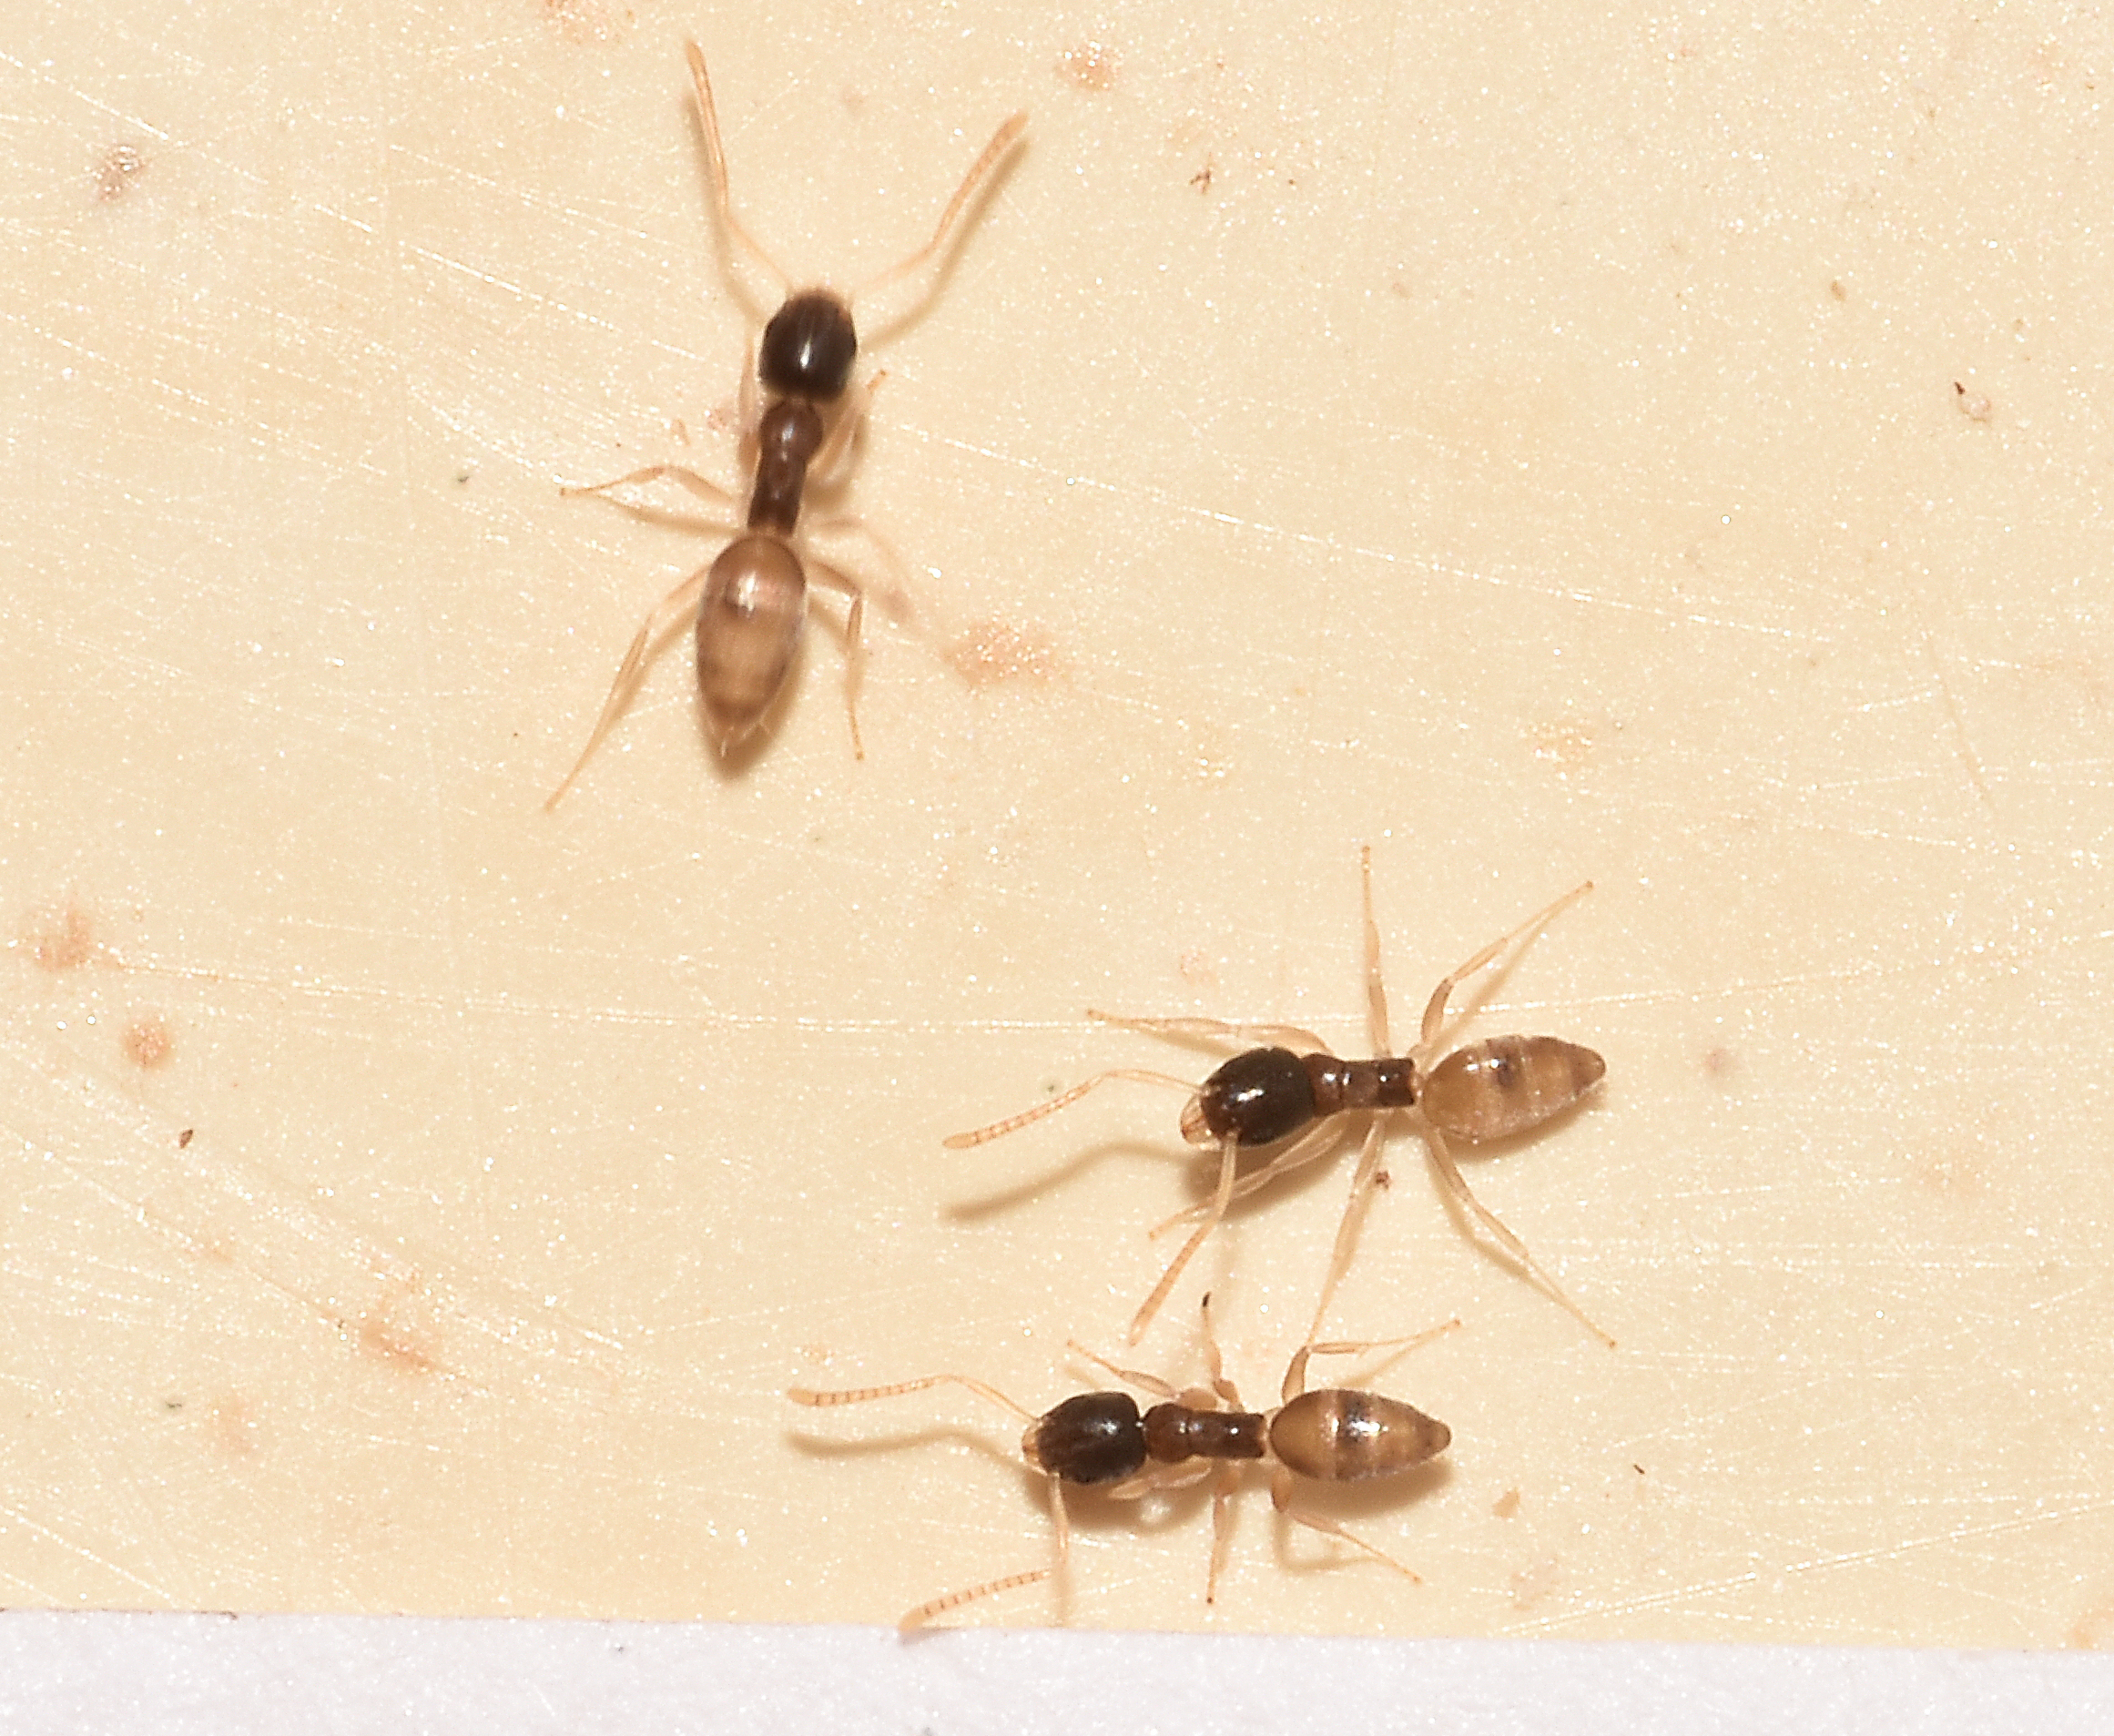 Marvelous Ants In Bathroom. Small Ants In Kitchen And Bathroom Besto Blog